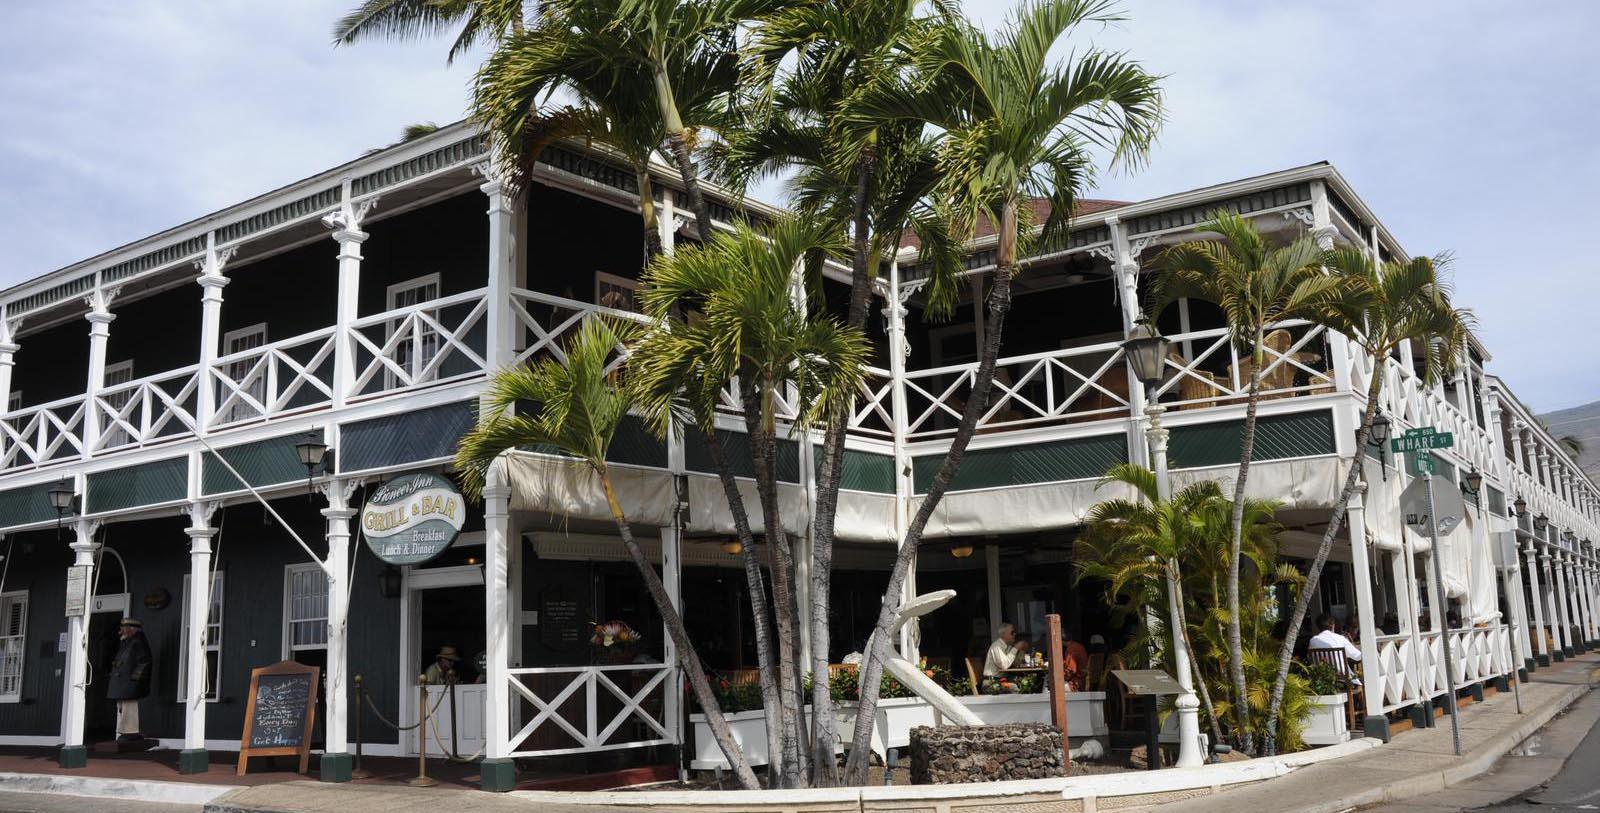 Image of Exterior of Pioneer Inn, 1901, Member Historic Hotels of America, in Lahaina, Hawaii, Special Offers, Discounted Rates, Families, Romantic Escape, Honeymoons, Anniversaries, Reunions